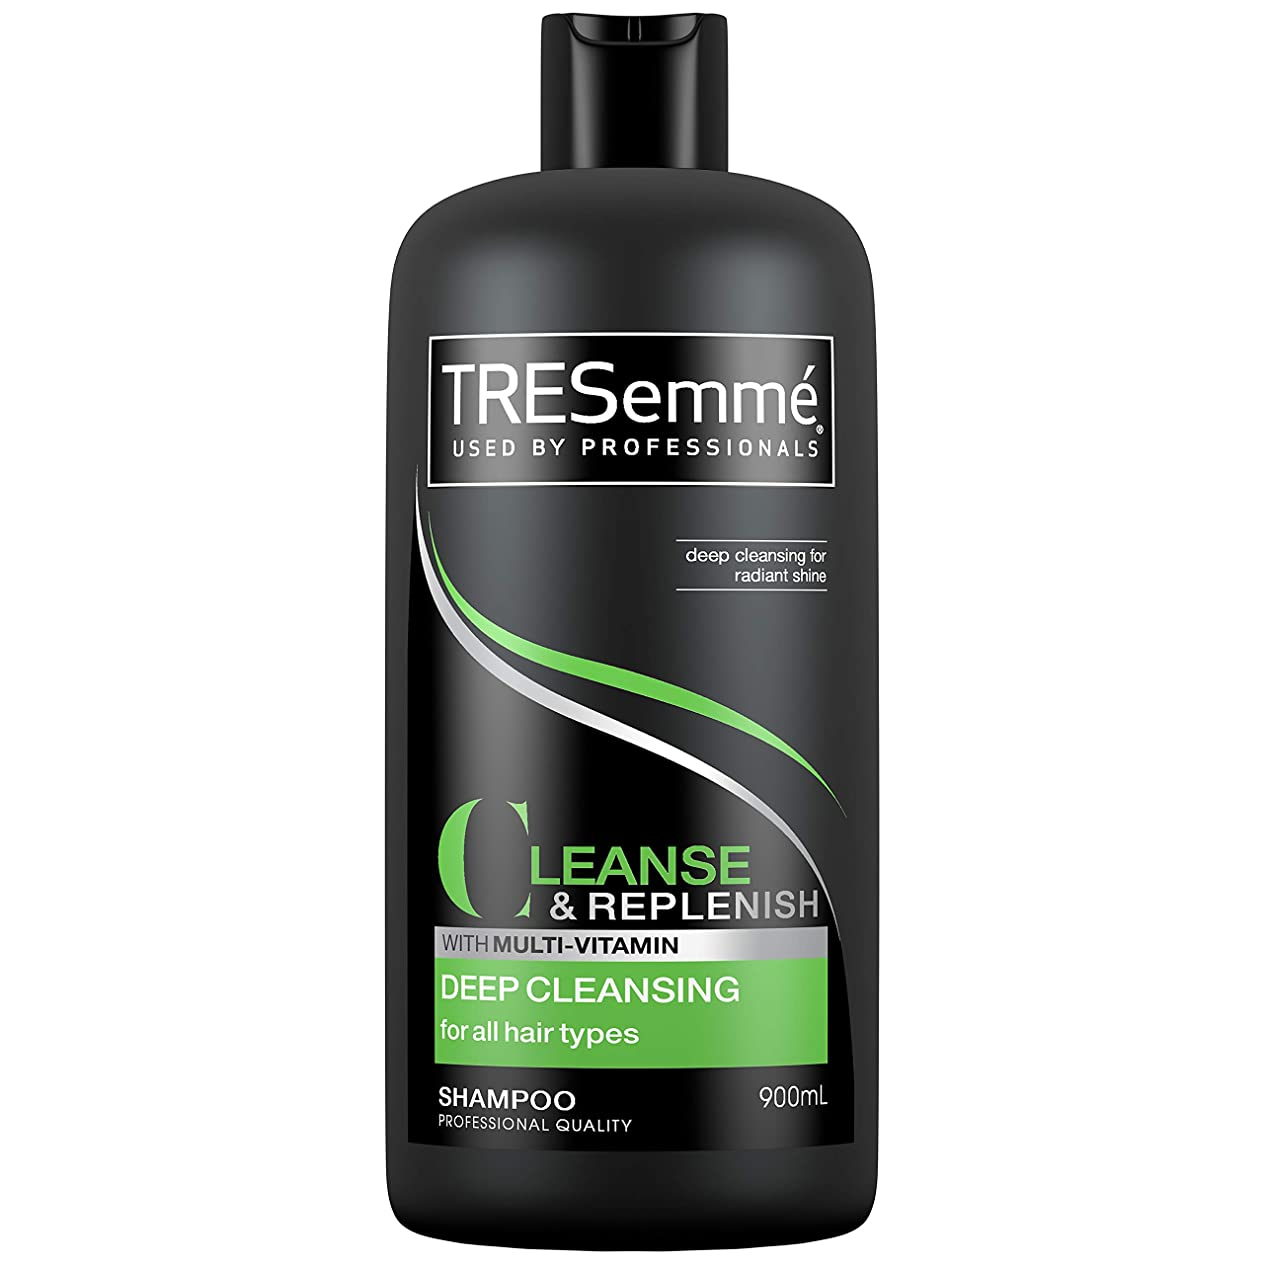 あいまい地殻タイマーTresemme Deep Cleansing Shampoo 900 ml